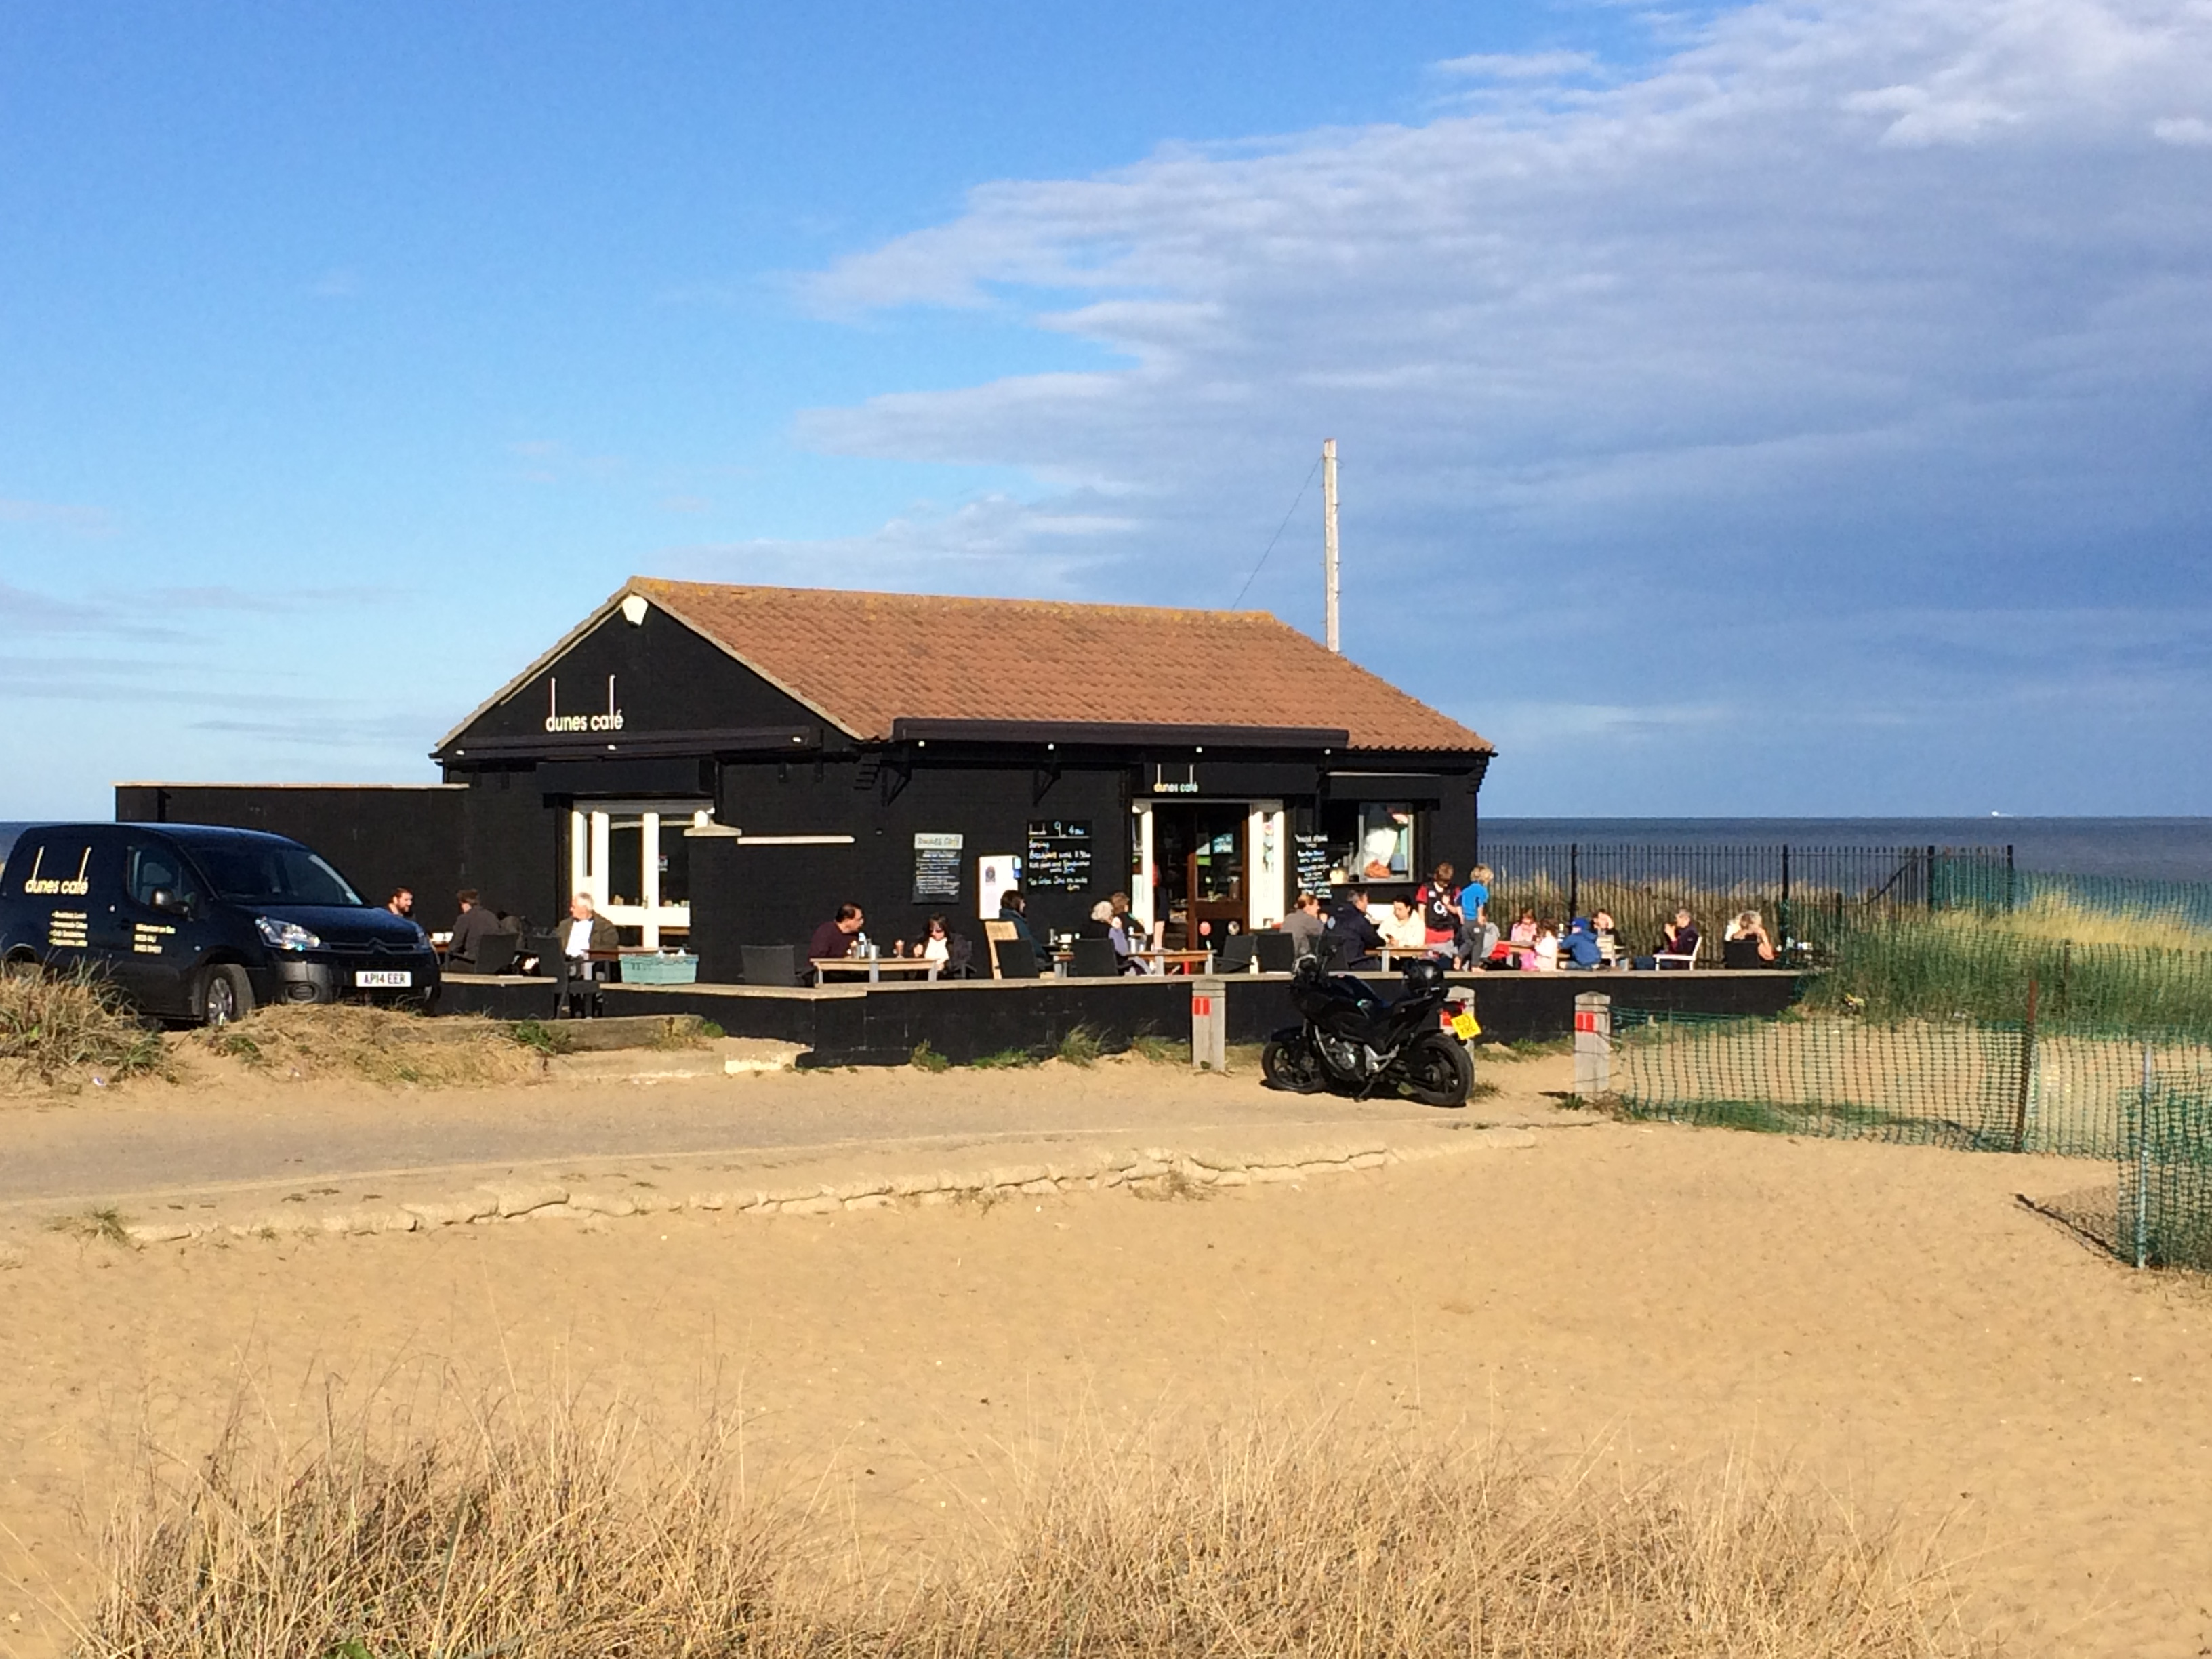 Dunes cafe on the beach at Winterton